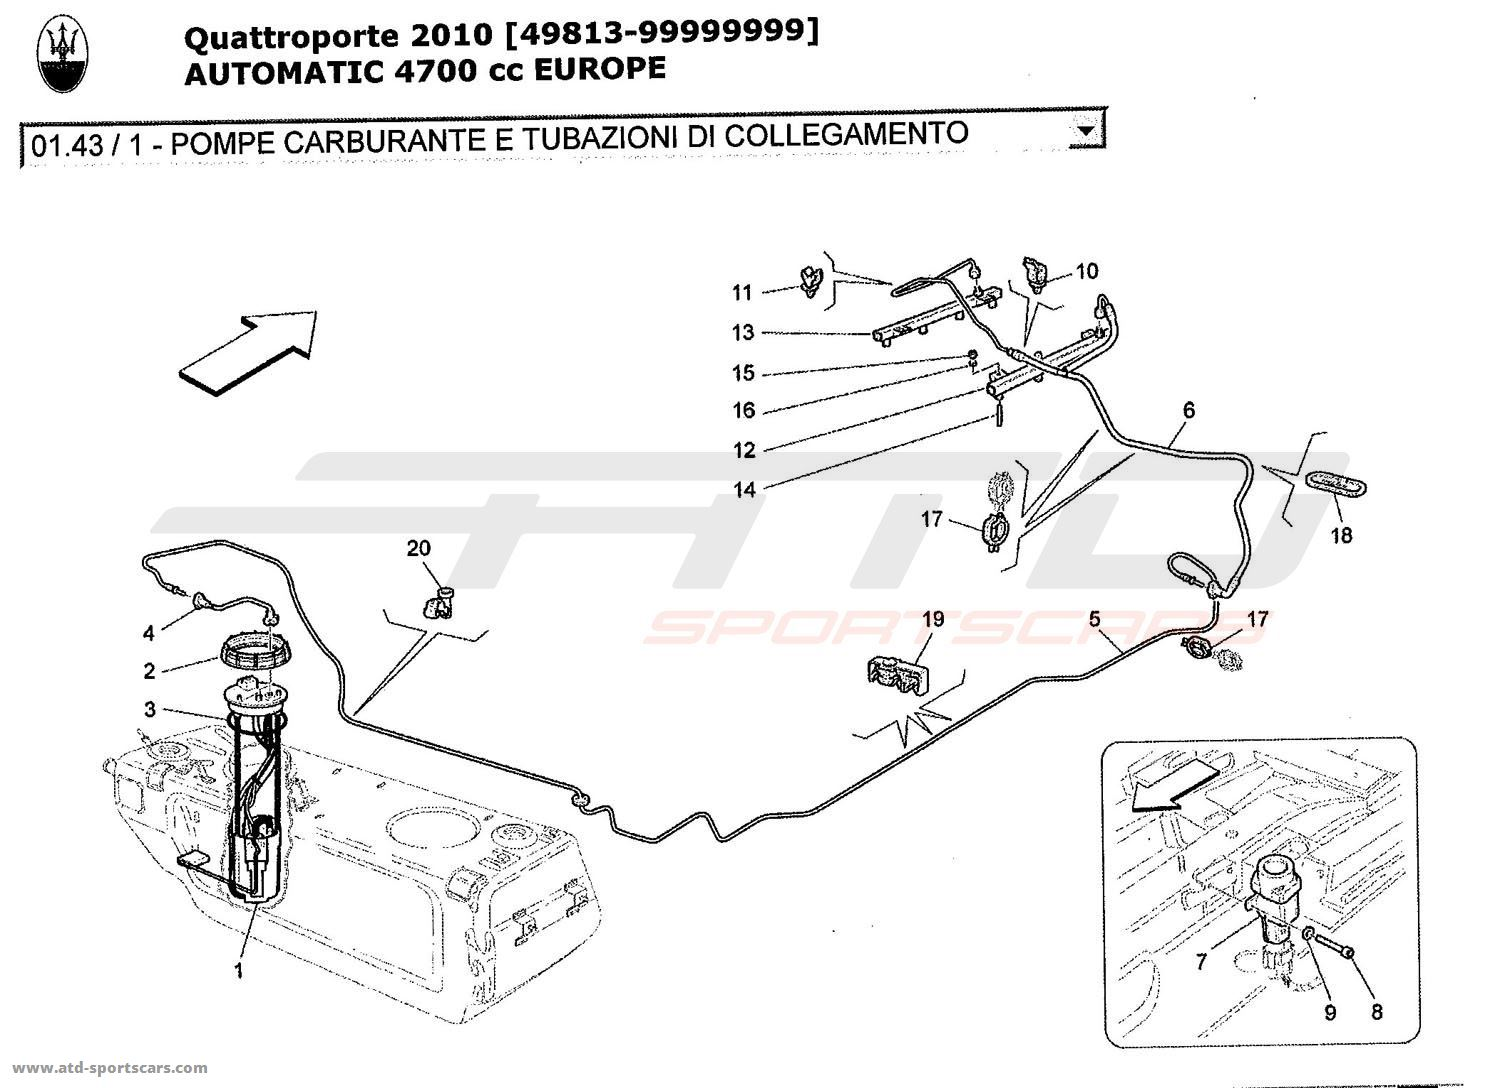 Service manual [2010 Maserati Quattroporte Secondary Air